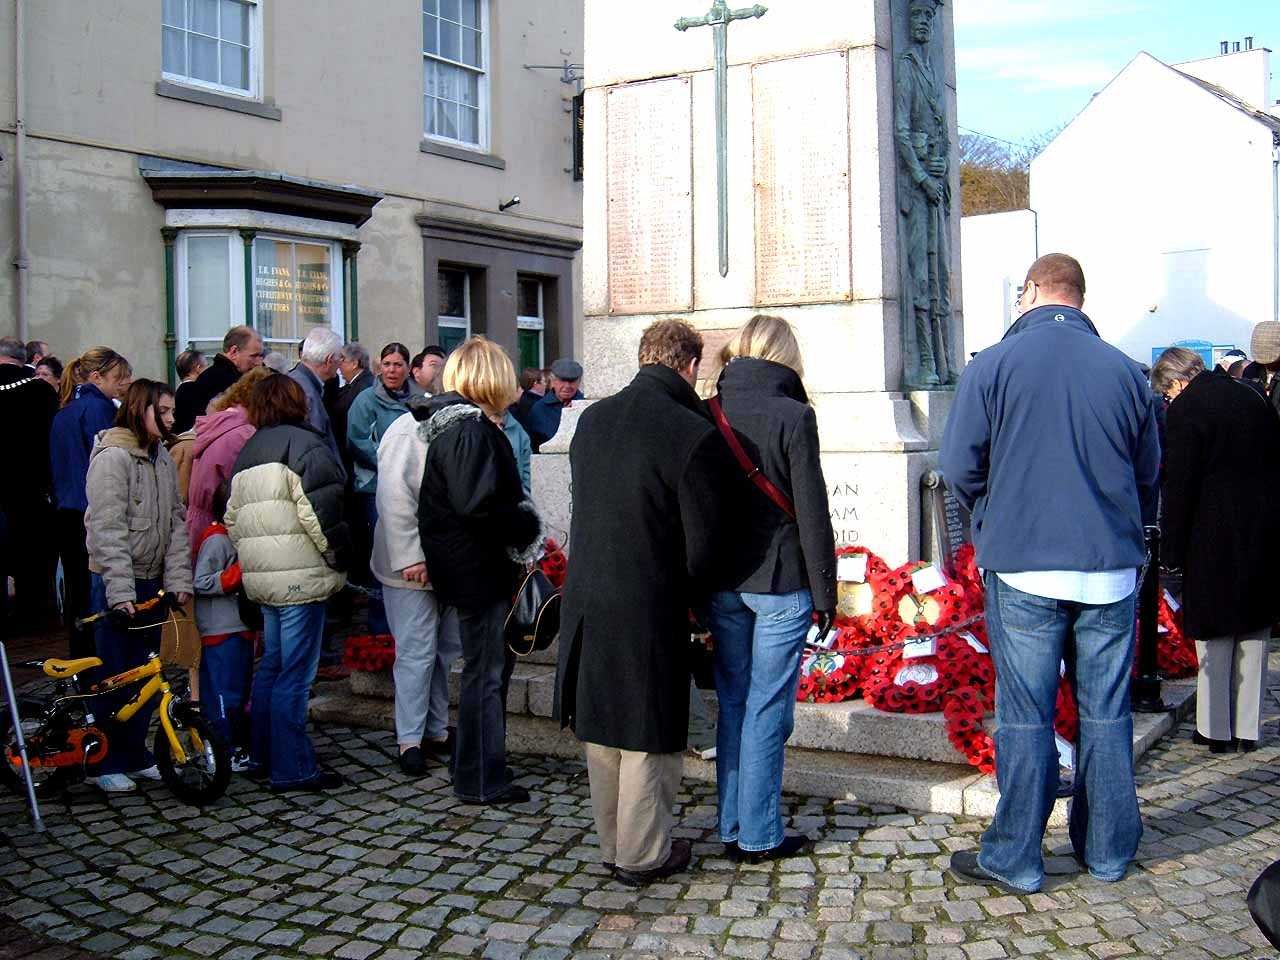 Anglesey, Holyhead, Remembrance Sunday 2006 - Reading the messages on the wreaths